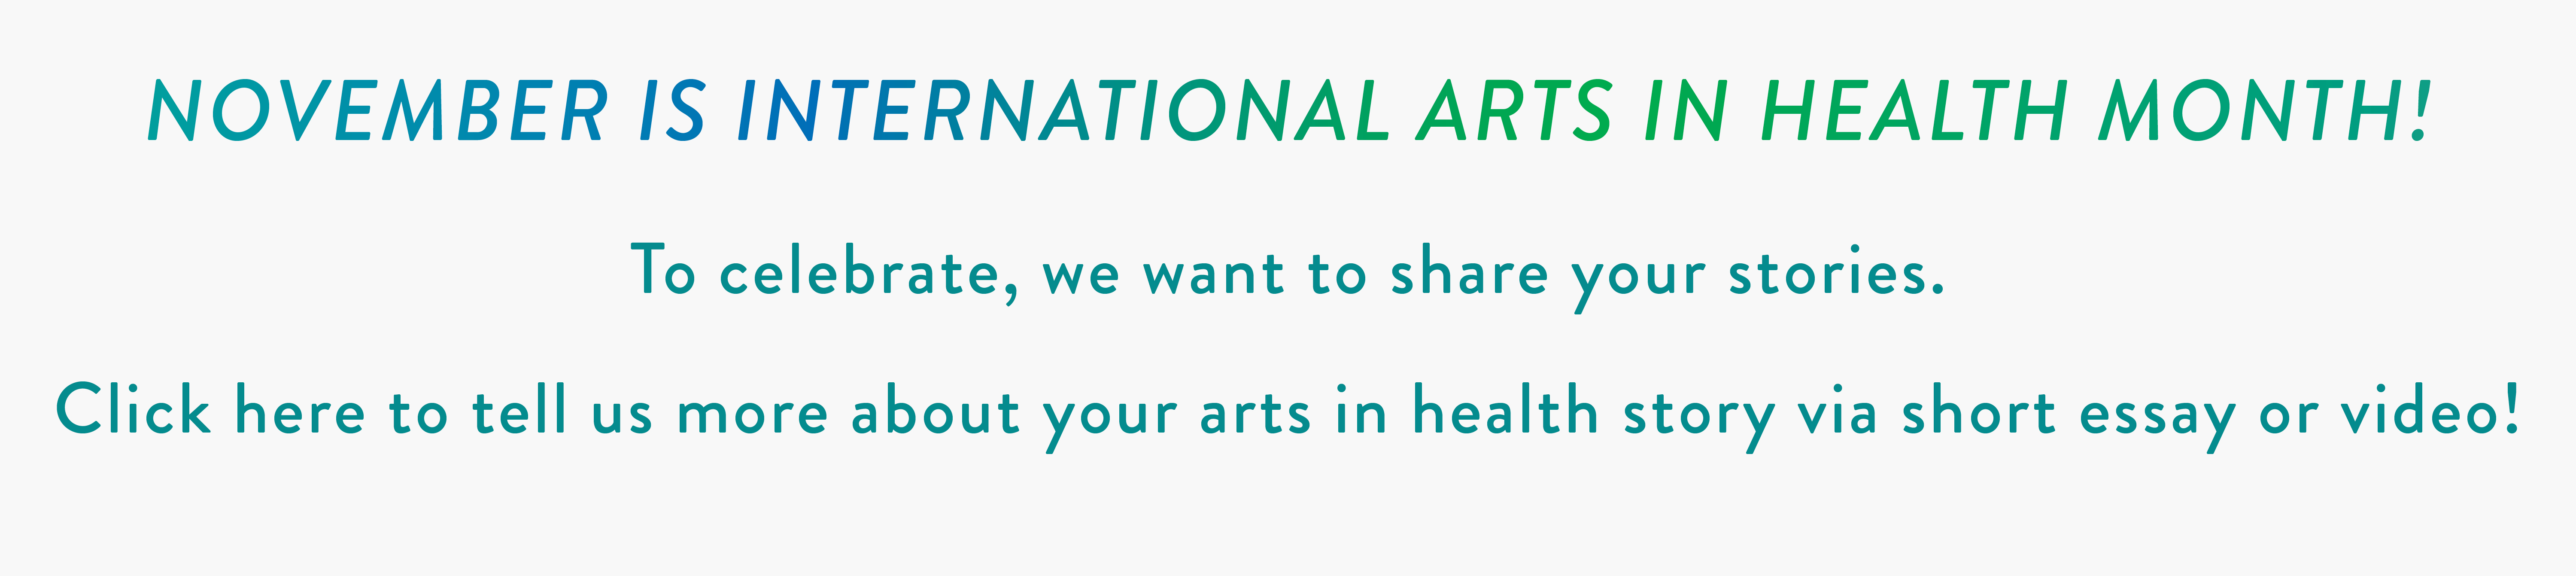 NOVEMBER IS INTERNATIONAL ARTS IN HEALTH MONTH! To celebrate, we want to share your stories. Click here to tell us more about your arts in health story via short essay or video!